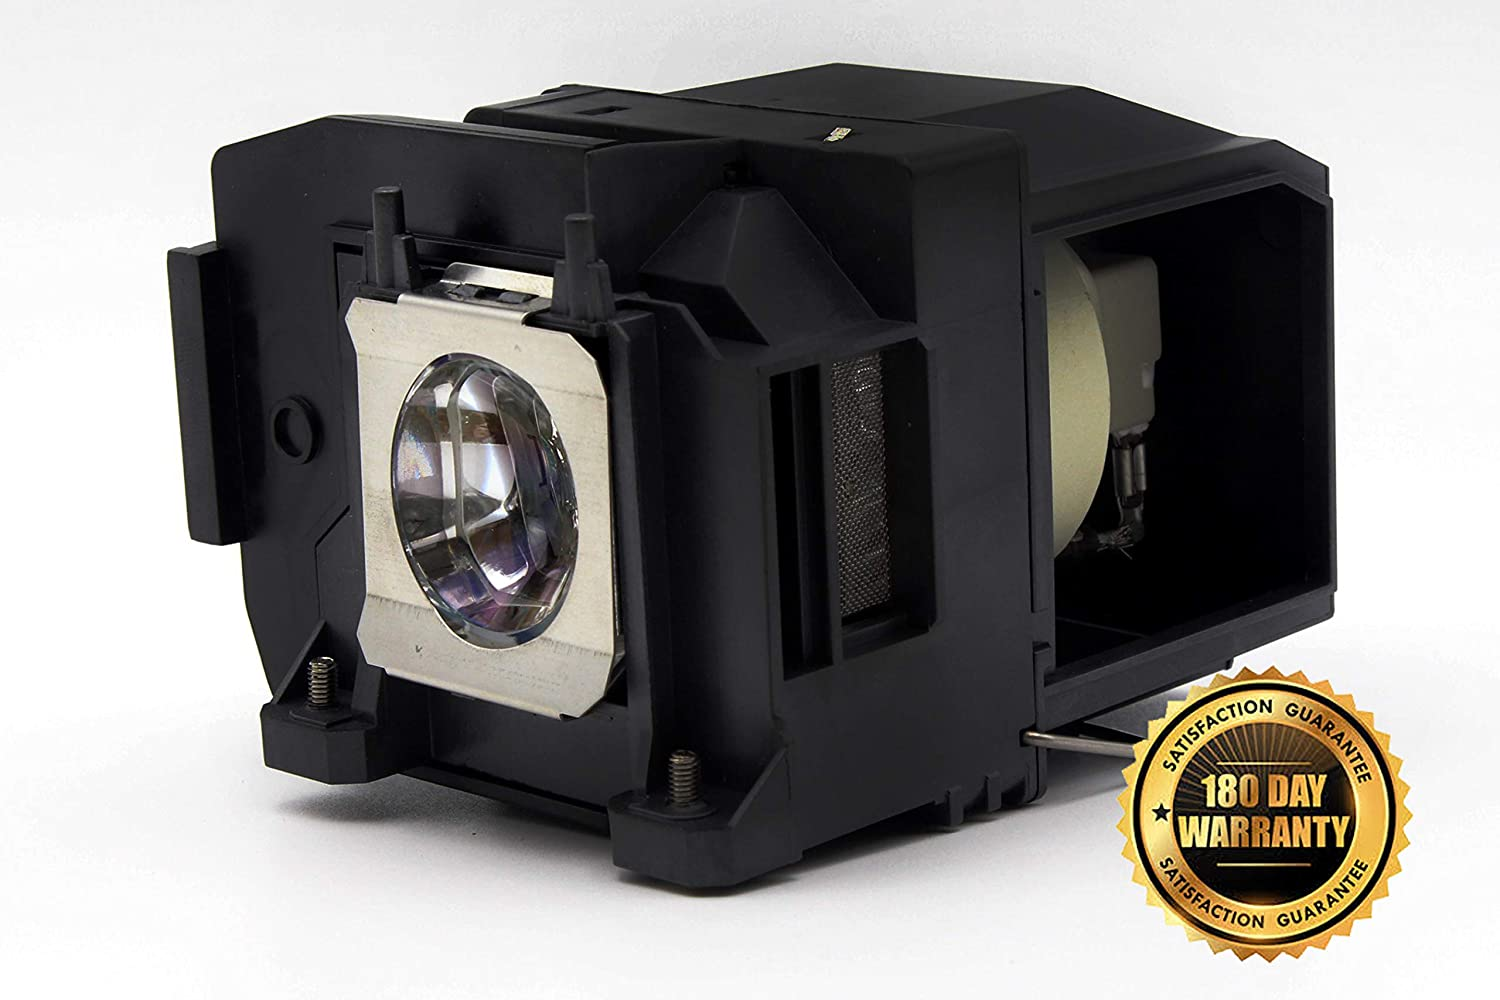 ELPLP85 Original Replacement Projector Lamp with Housing for Epson Home Cinema 3000/3100/ 3500/ 3600e/ 3700/3900 EH-TW6600 EH-TW6600W EH-TW6700 EH-TW6800 Projectors